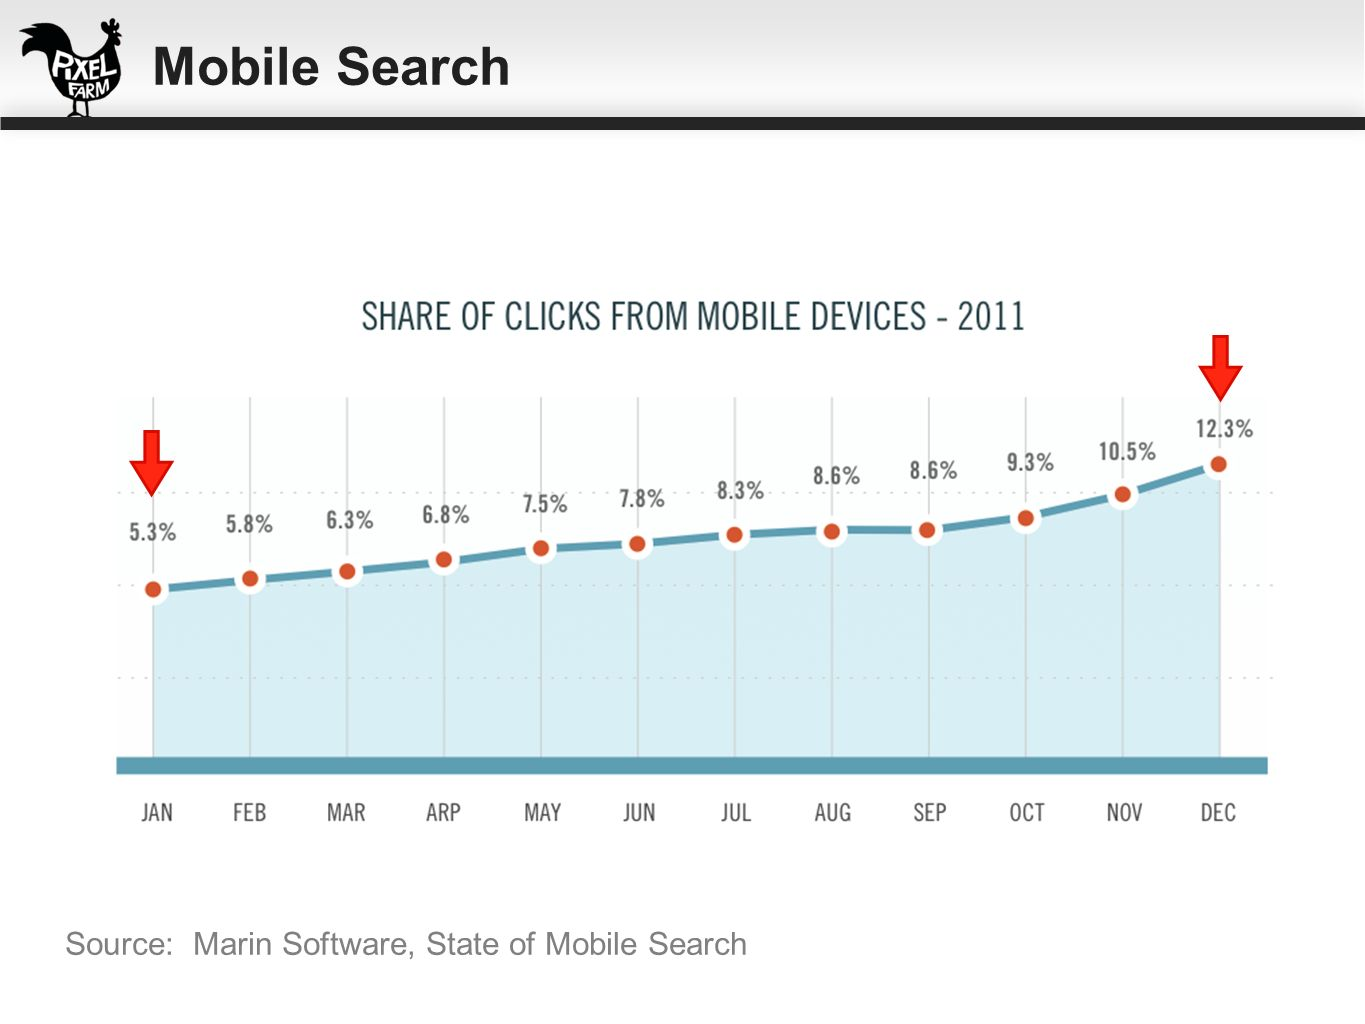 Source: Marin Software, State of Mobile Search Mobile Search